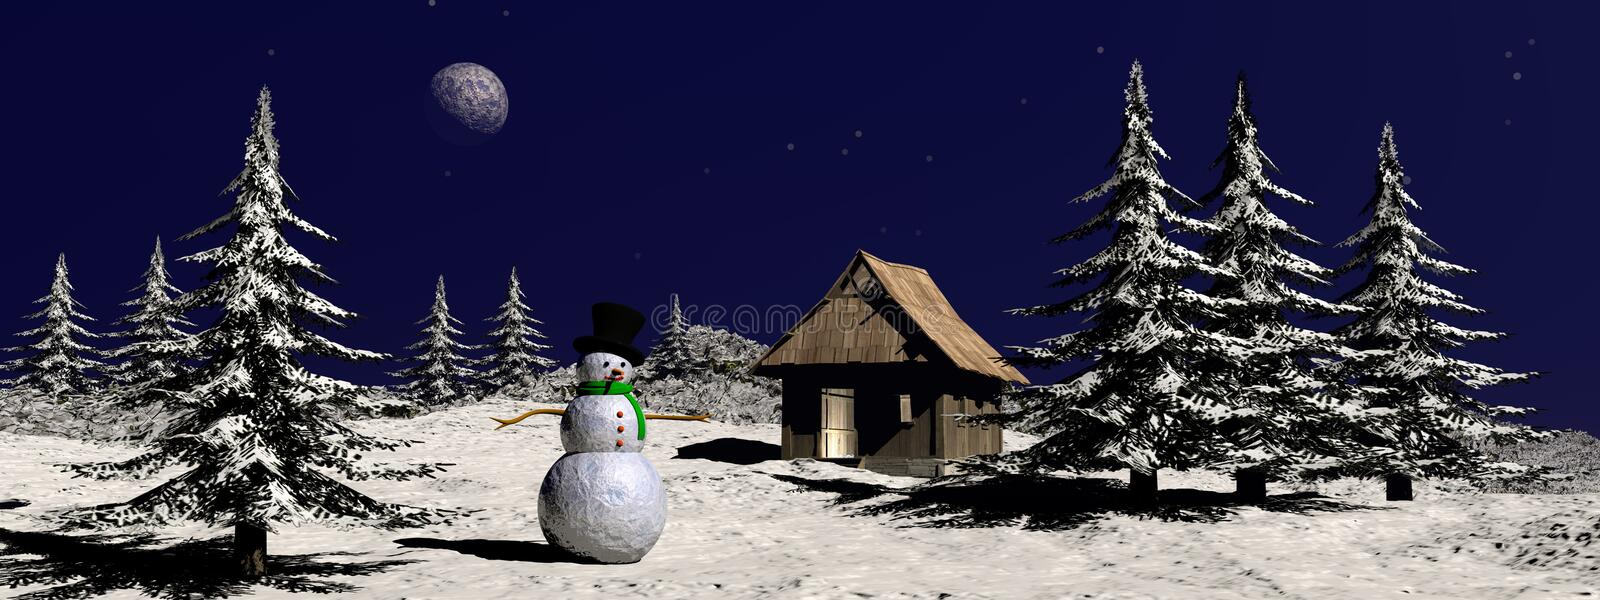 Christmas snowman at the mountain - 3D render vector illustration